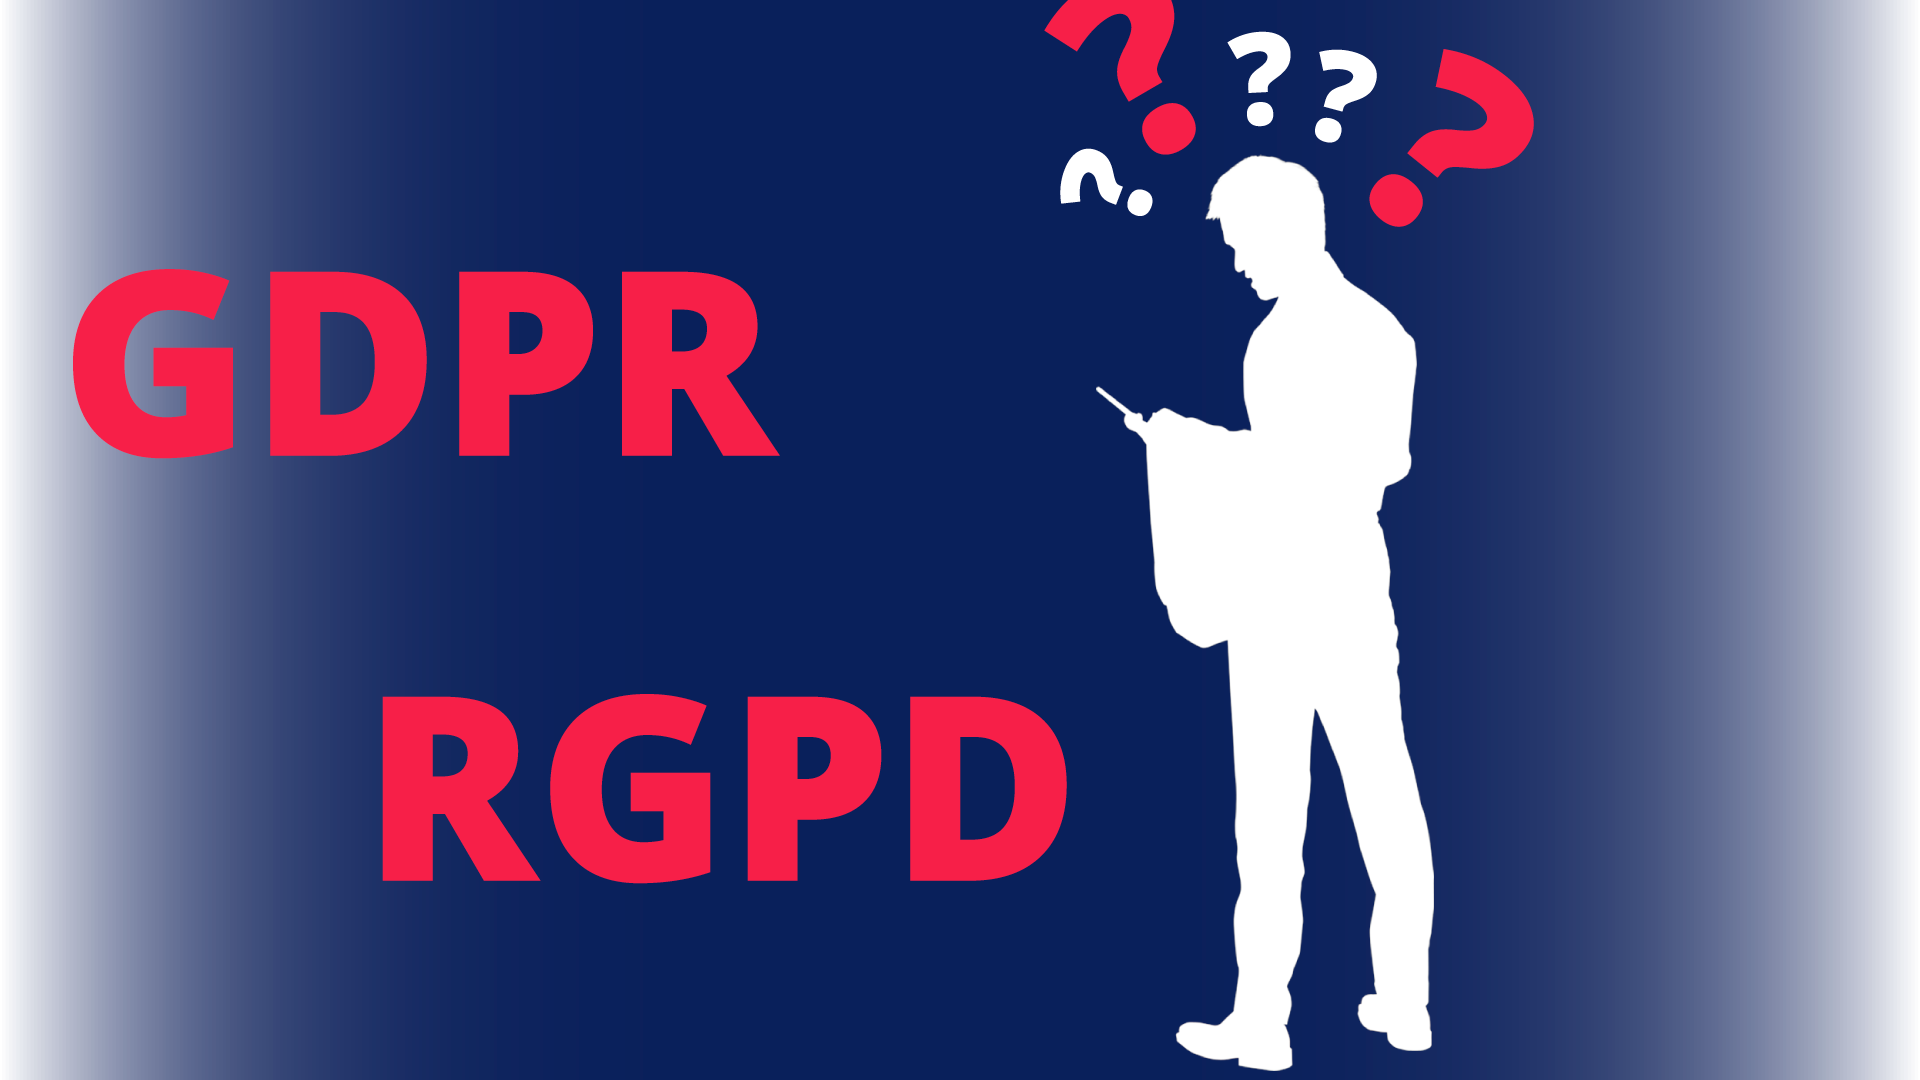 What's the real purpose of the GDPR